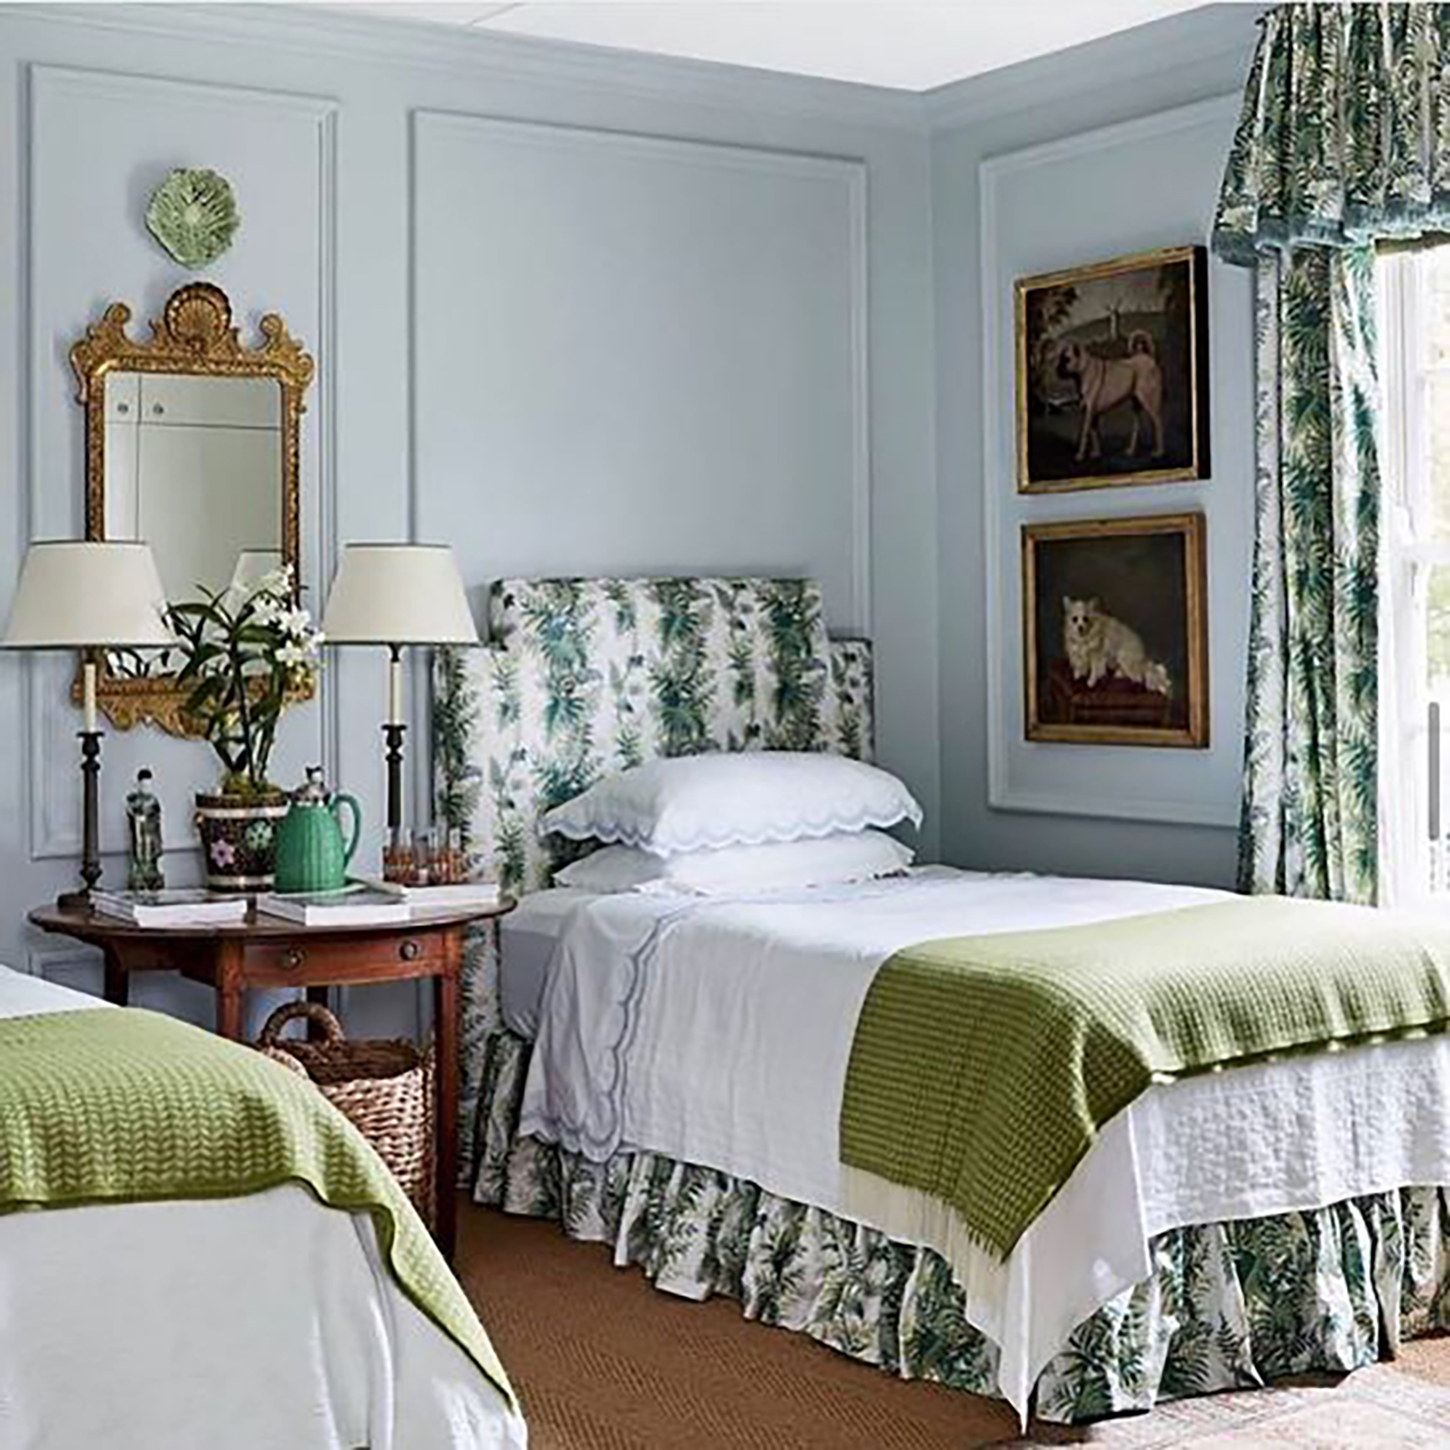 cameron kimber guest room on Cindy Hattersleys blog